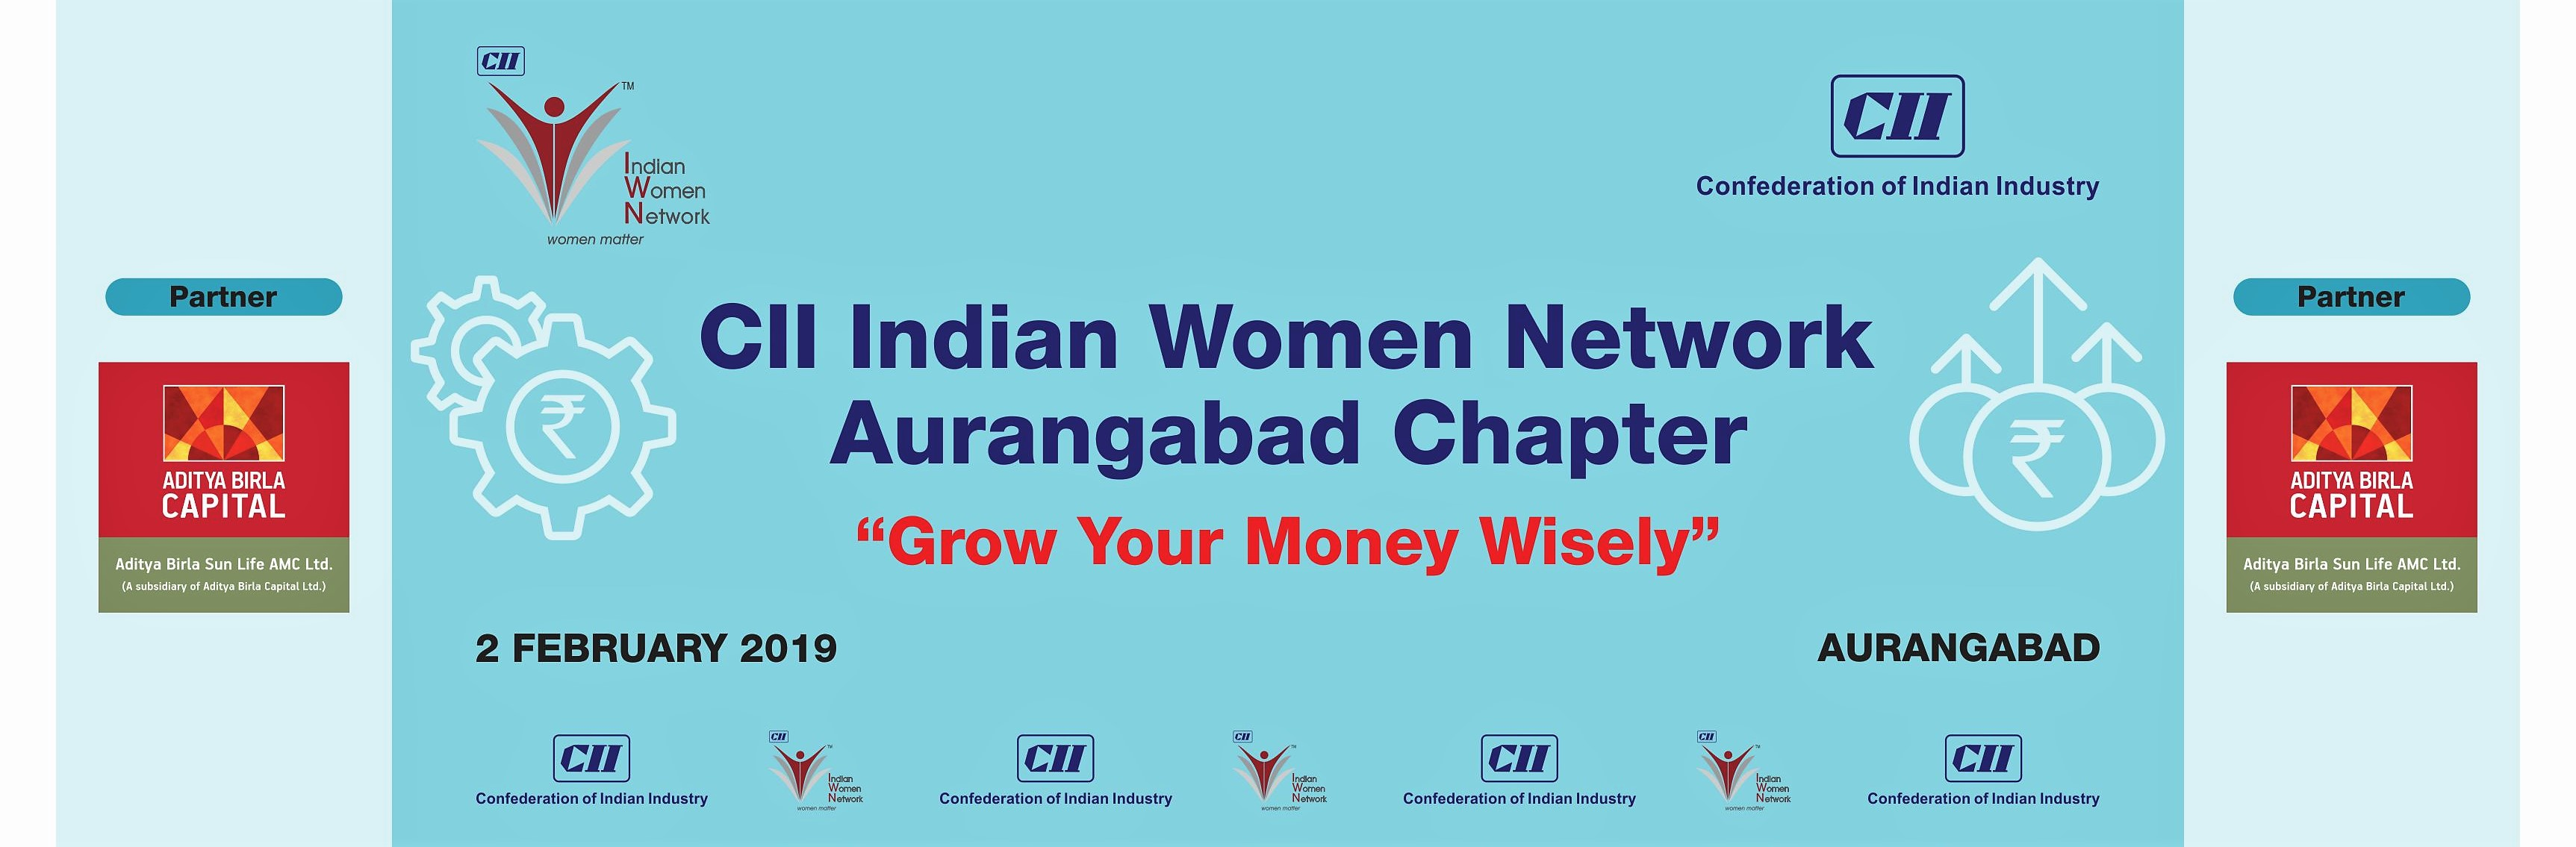 CII IWN Aurangabad Chapter - Session on Grow Your Money Wisely